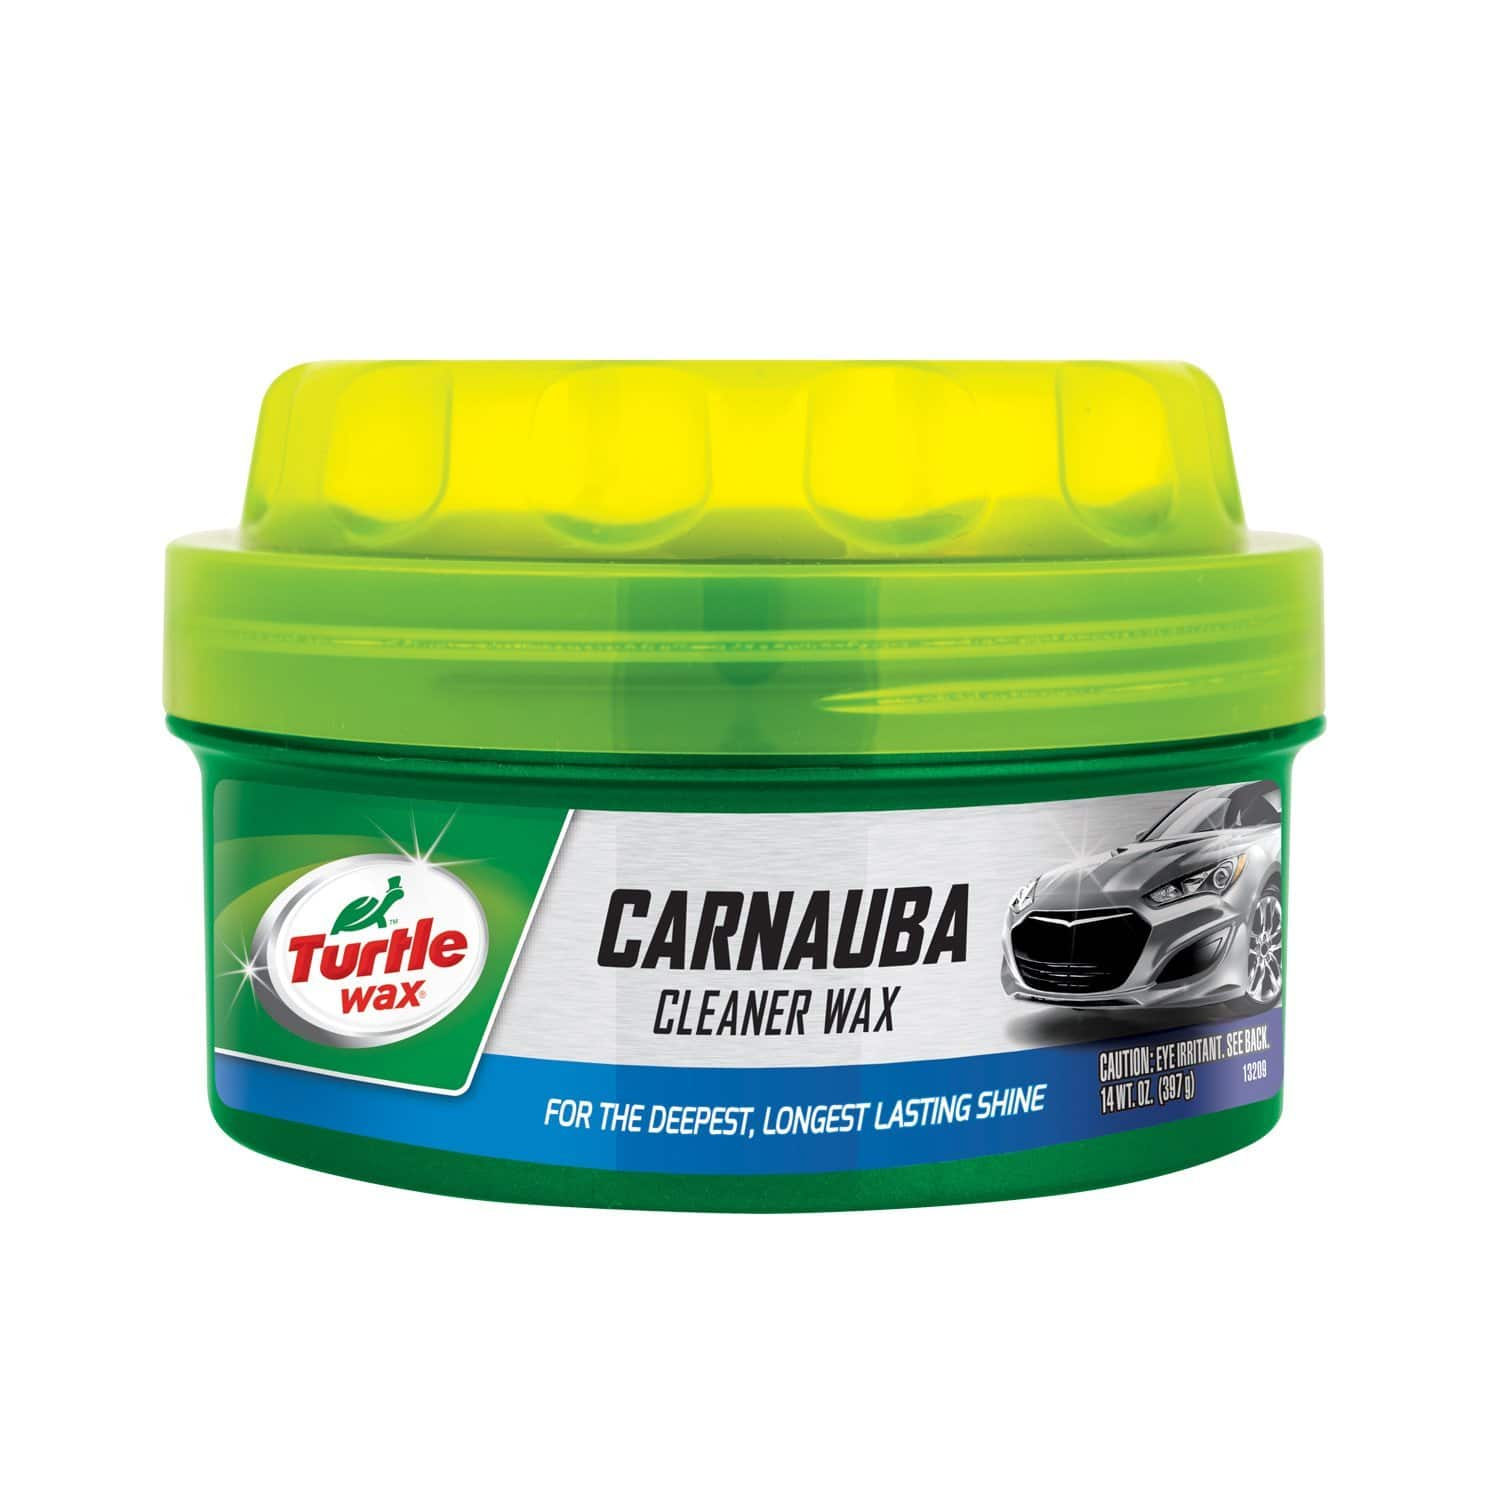 Turtle Wax T-5A Carnauba Cleaner Paste Wax As low as $2.88 S&S Free shipping